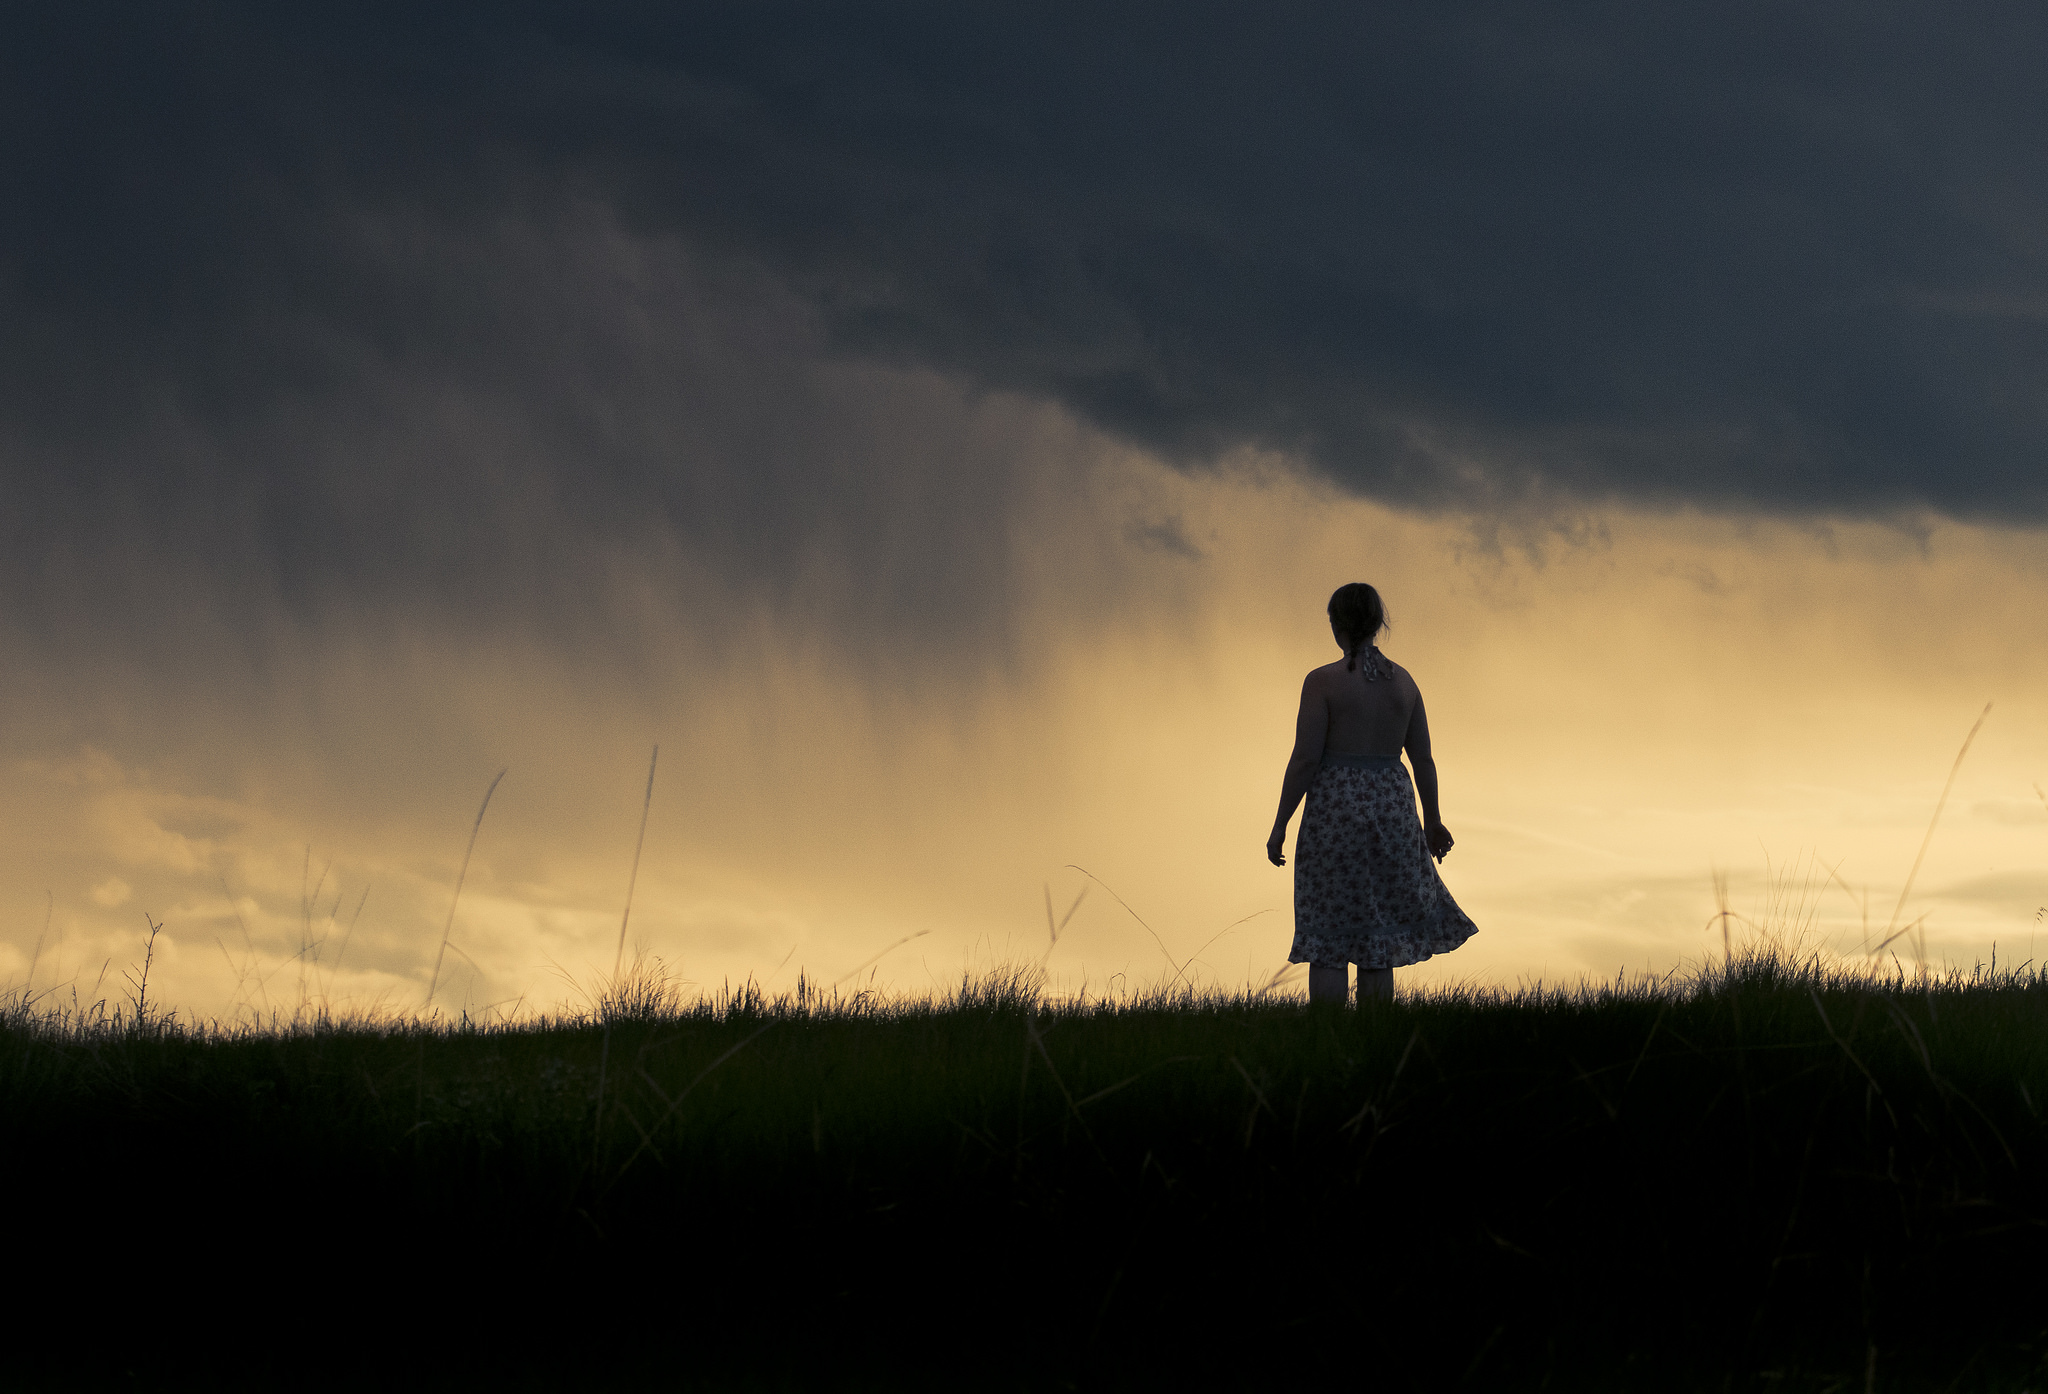 Woman silhouetted by the setting sun, standing on a hill.